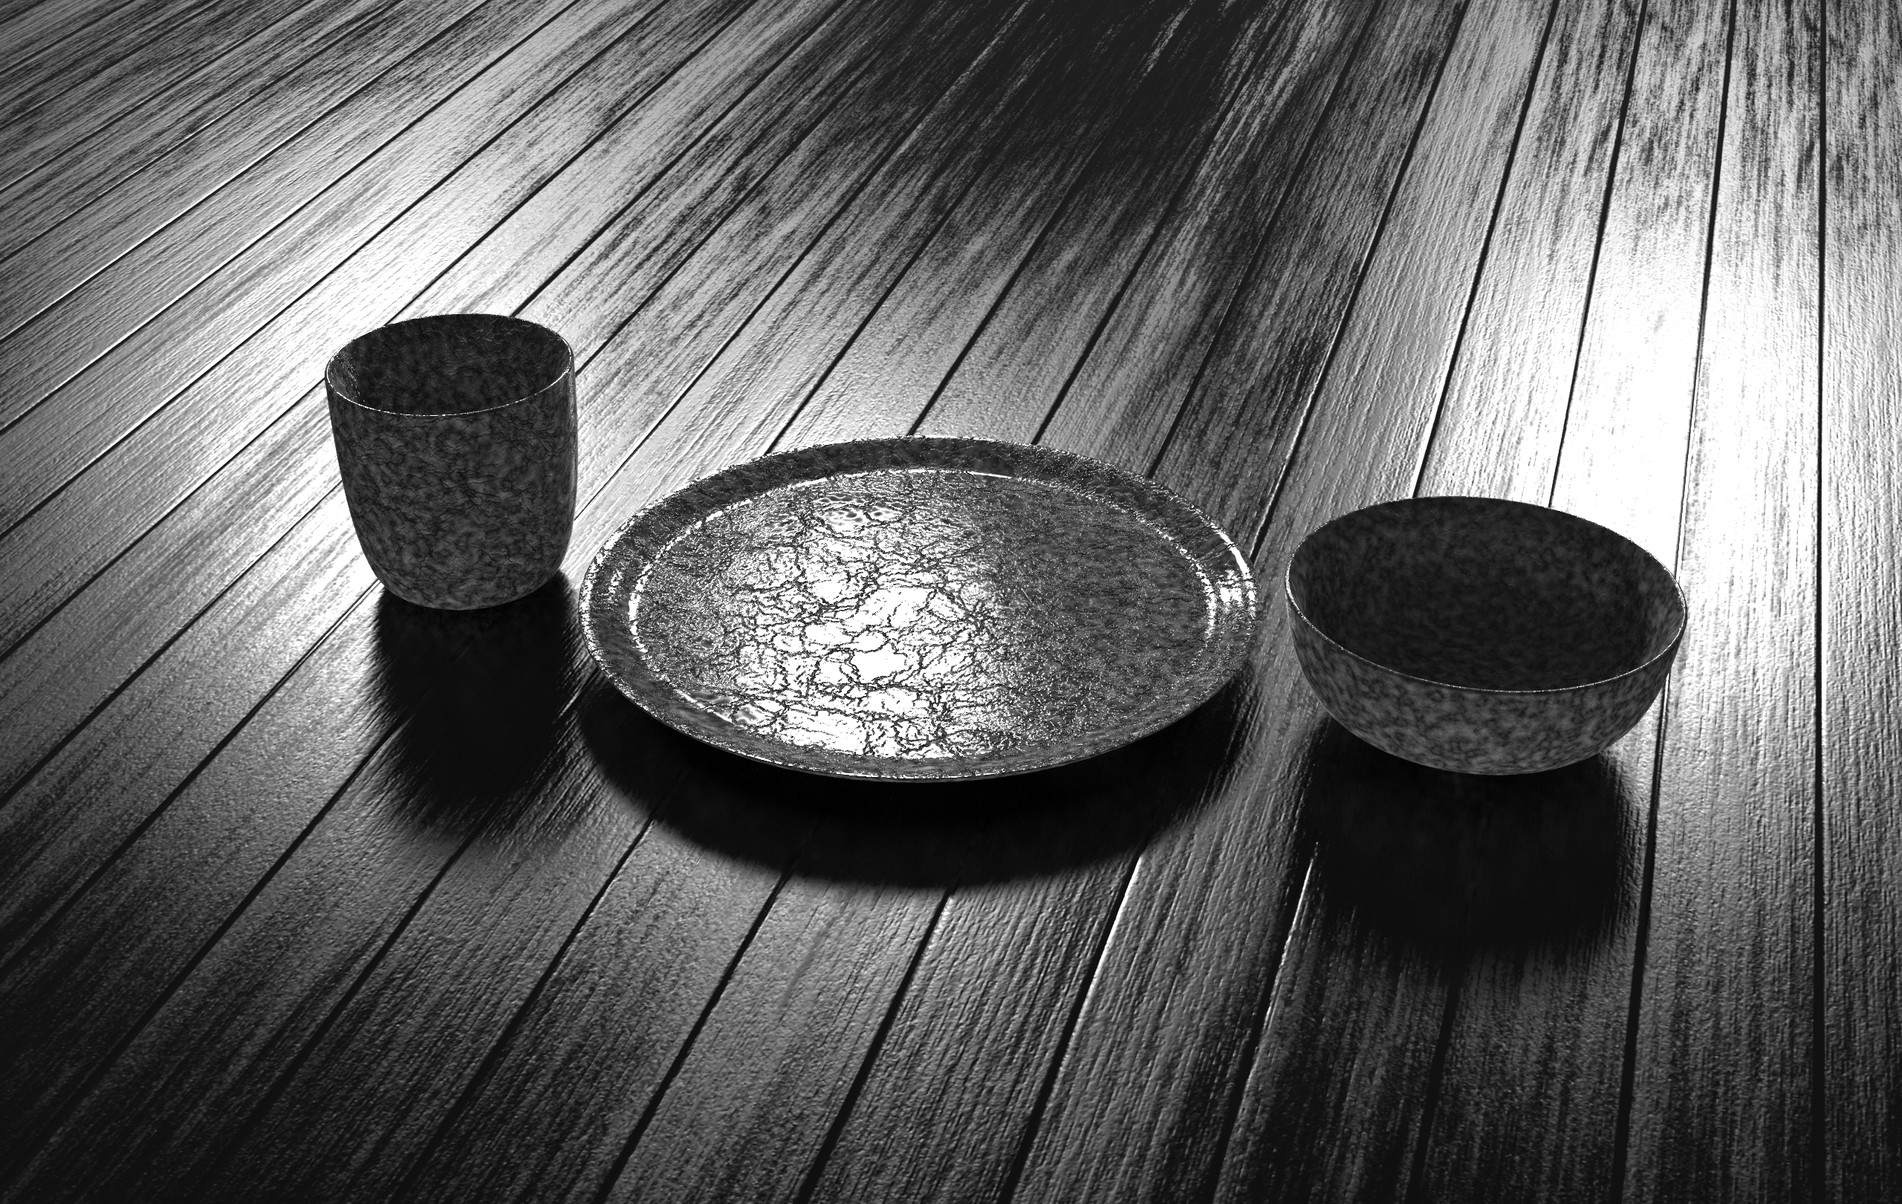 Plate, Bowl, Cup